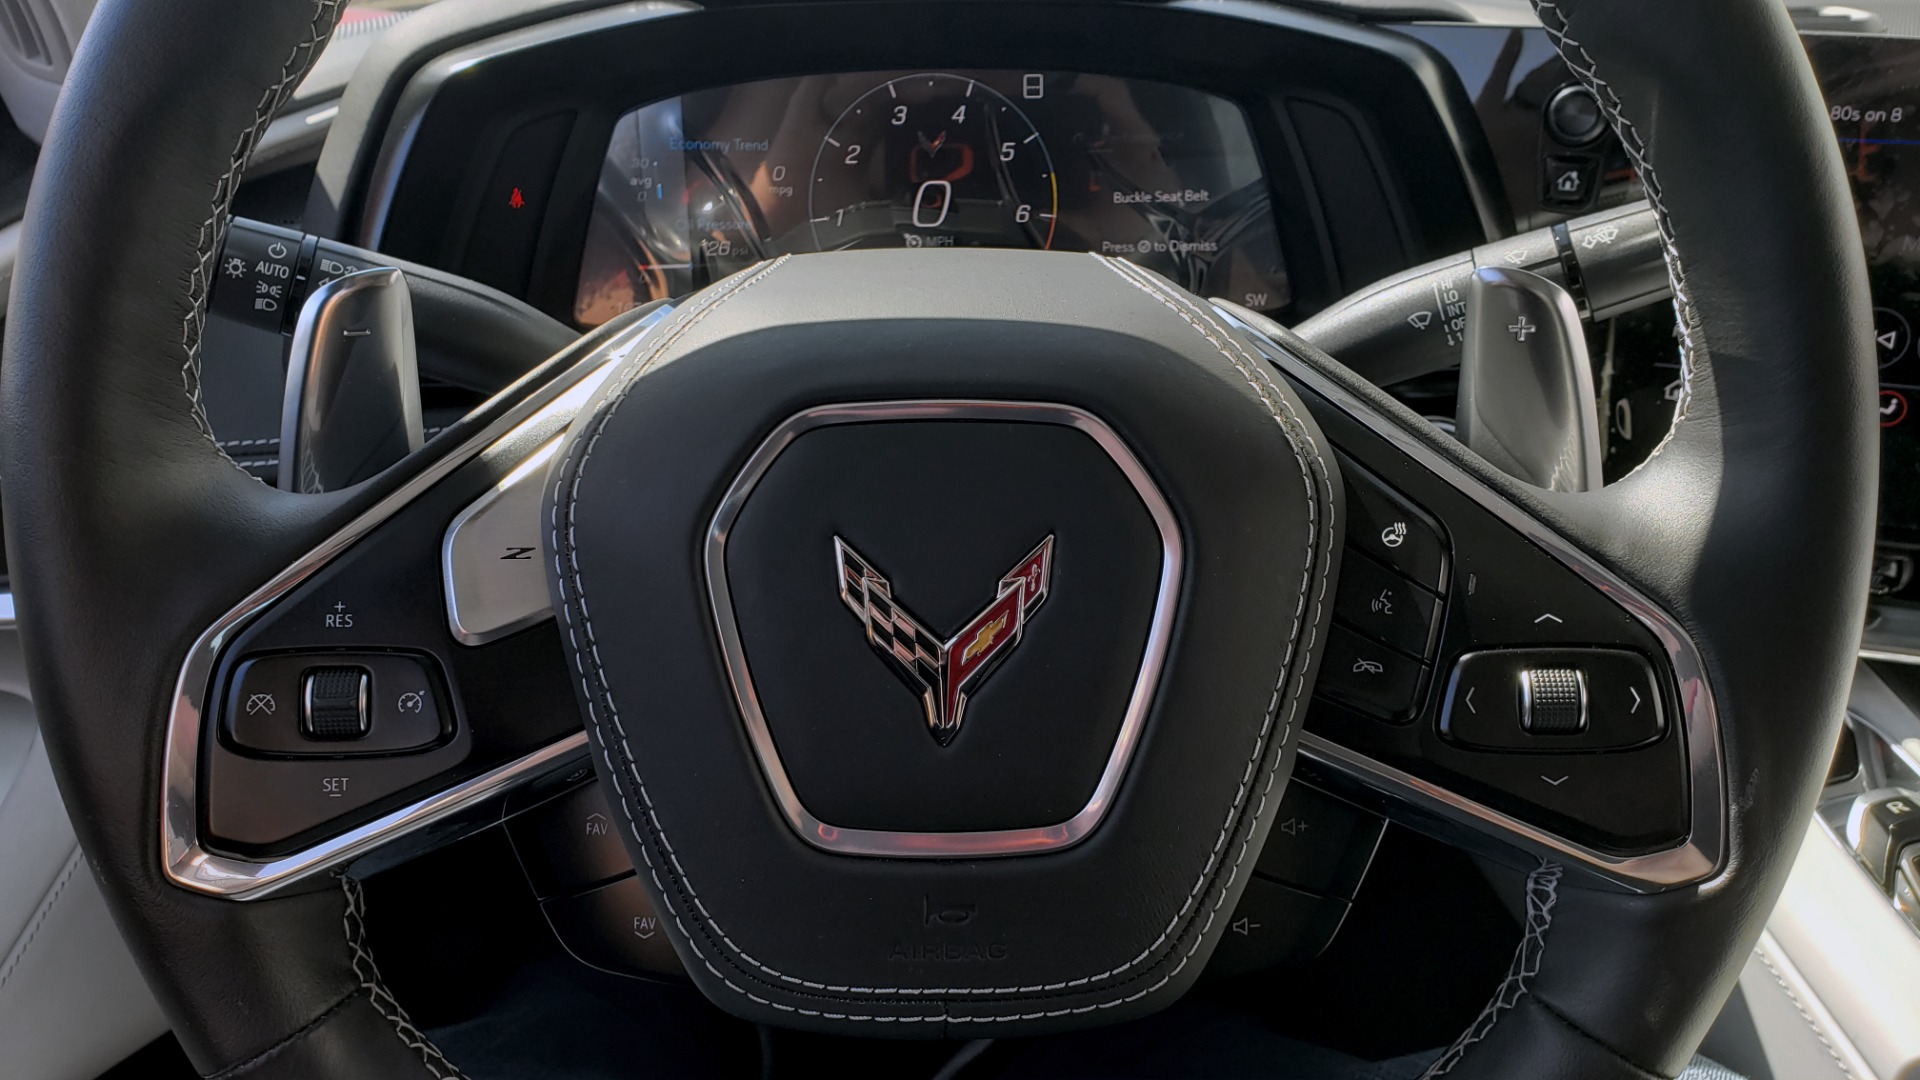 Used 2020 Chevrolet CORVETTE C8 STINGRAY 3LT COUPE / NAV / BOSE / CAMERA / LIKE NEW for sale Sold at Formula Imports in Charlotte NC 28227 53